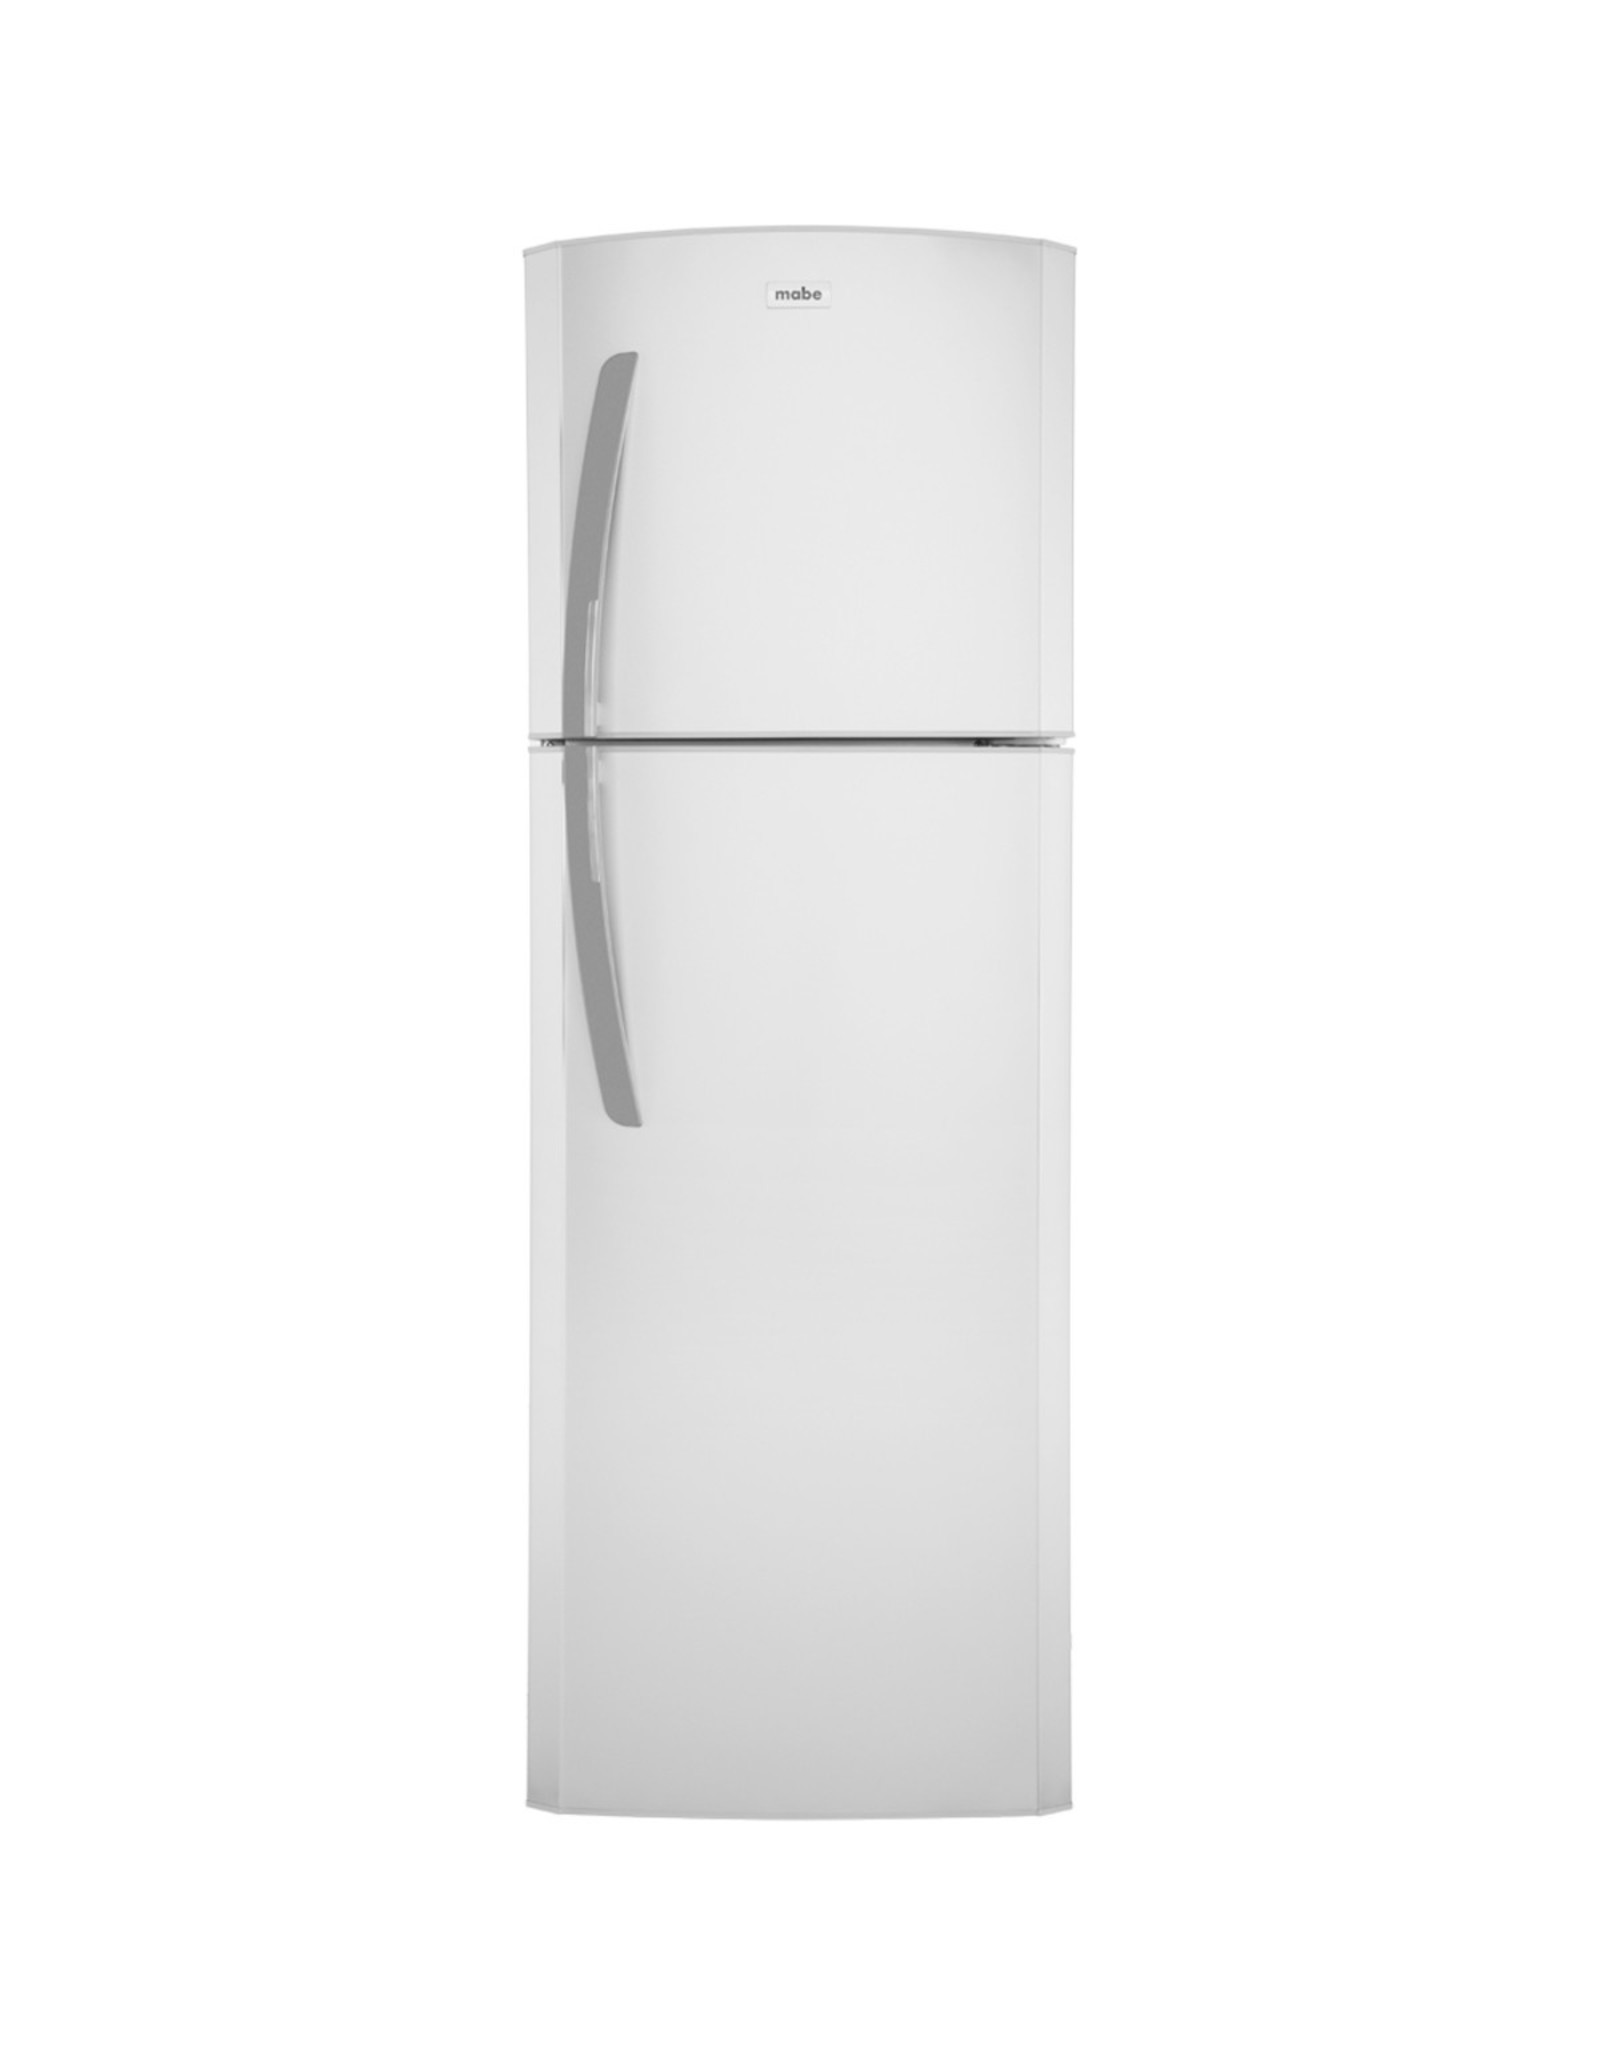 Mabe Mabe Refrigerator 11 ft Silver RMA1130XMFS0